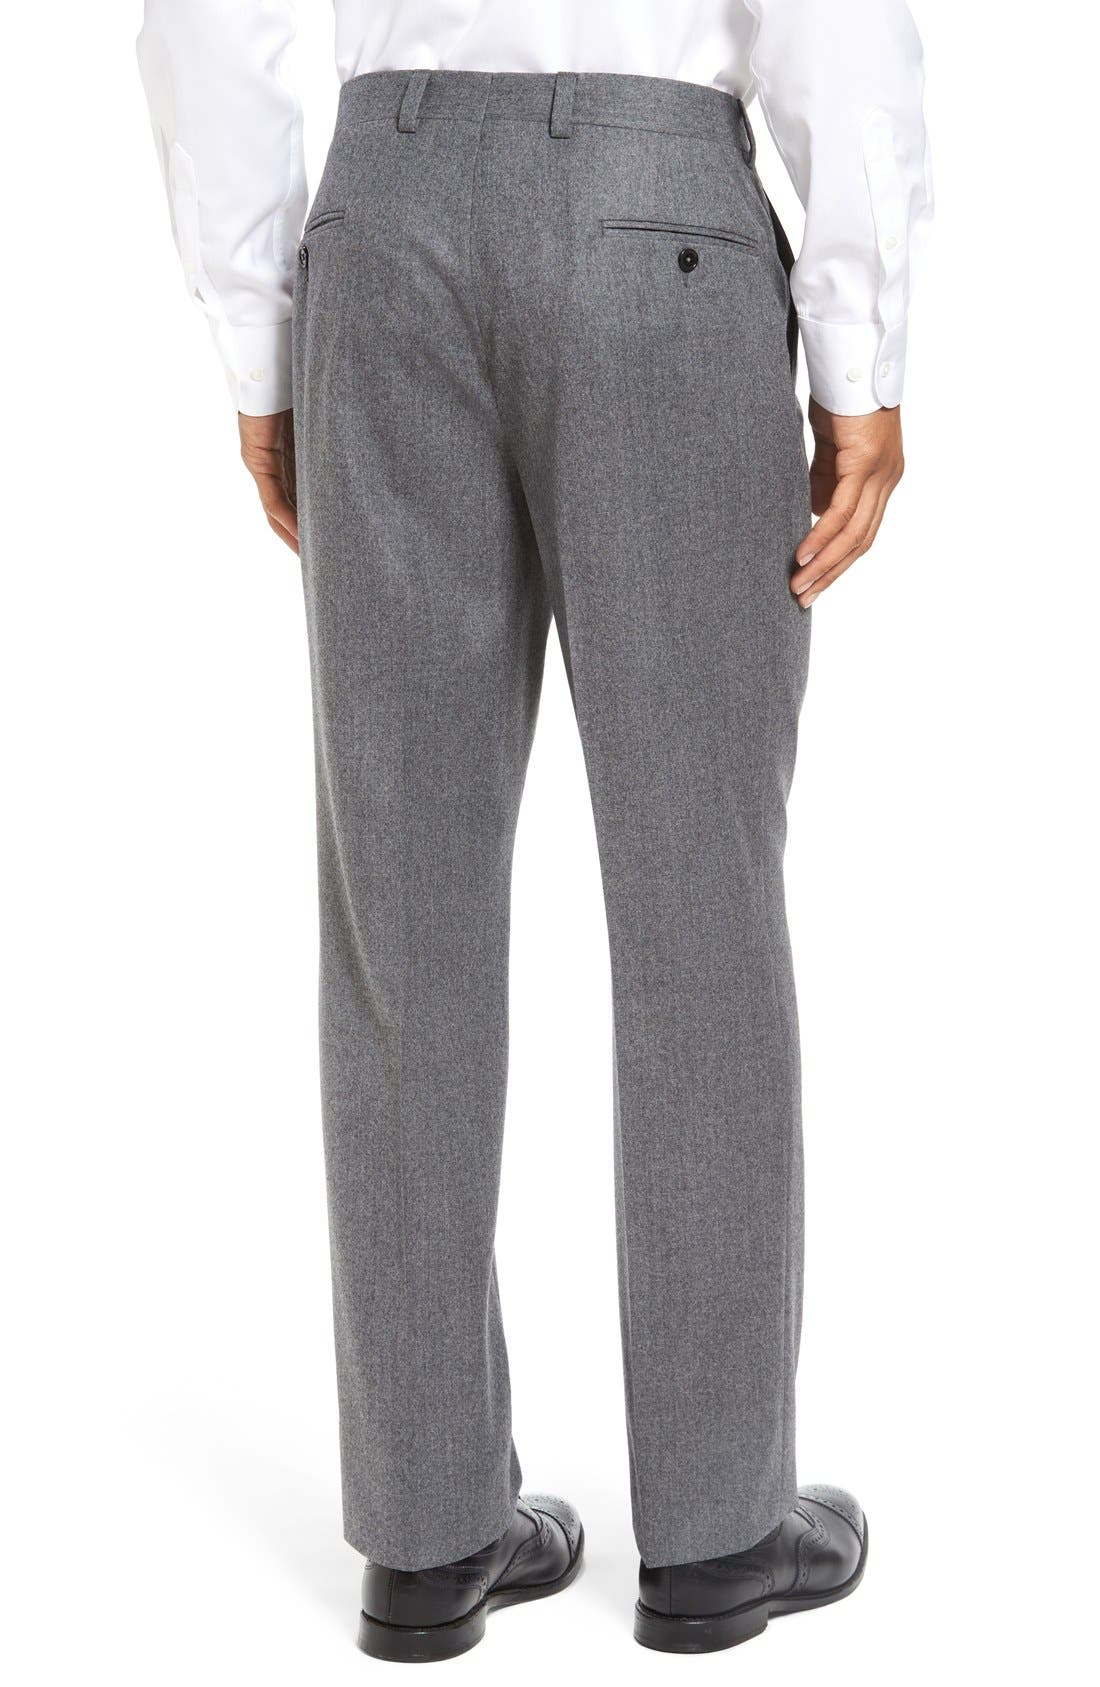 'Ryan' Classic Fit Trousers,                             Alternate thumbnail 3, color,                             020